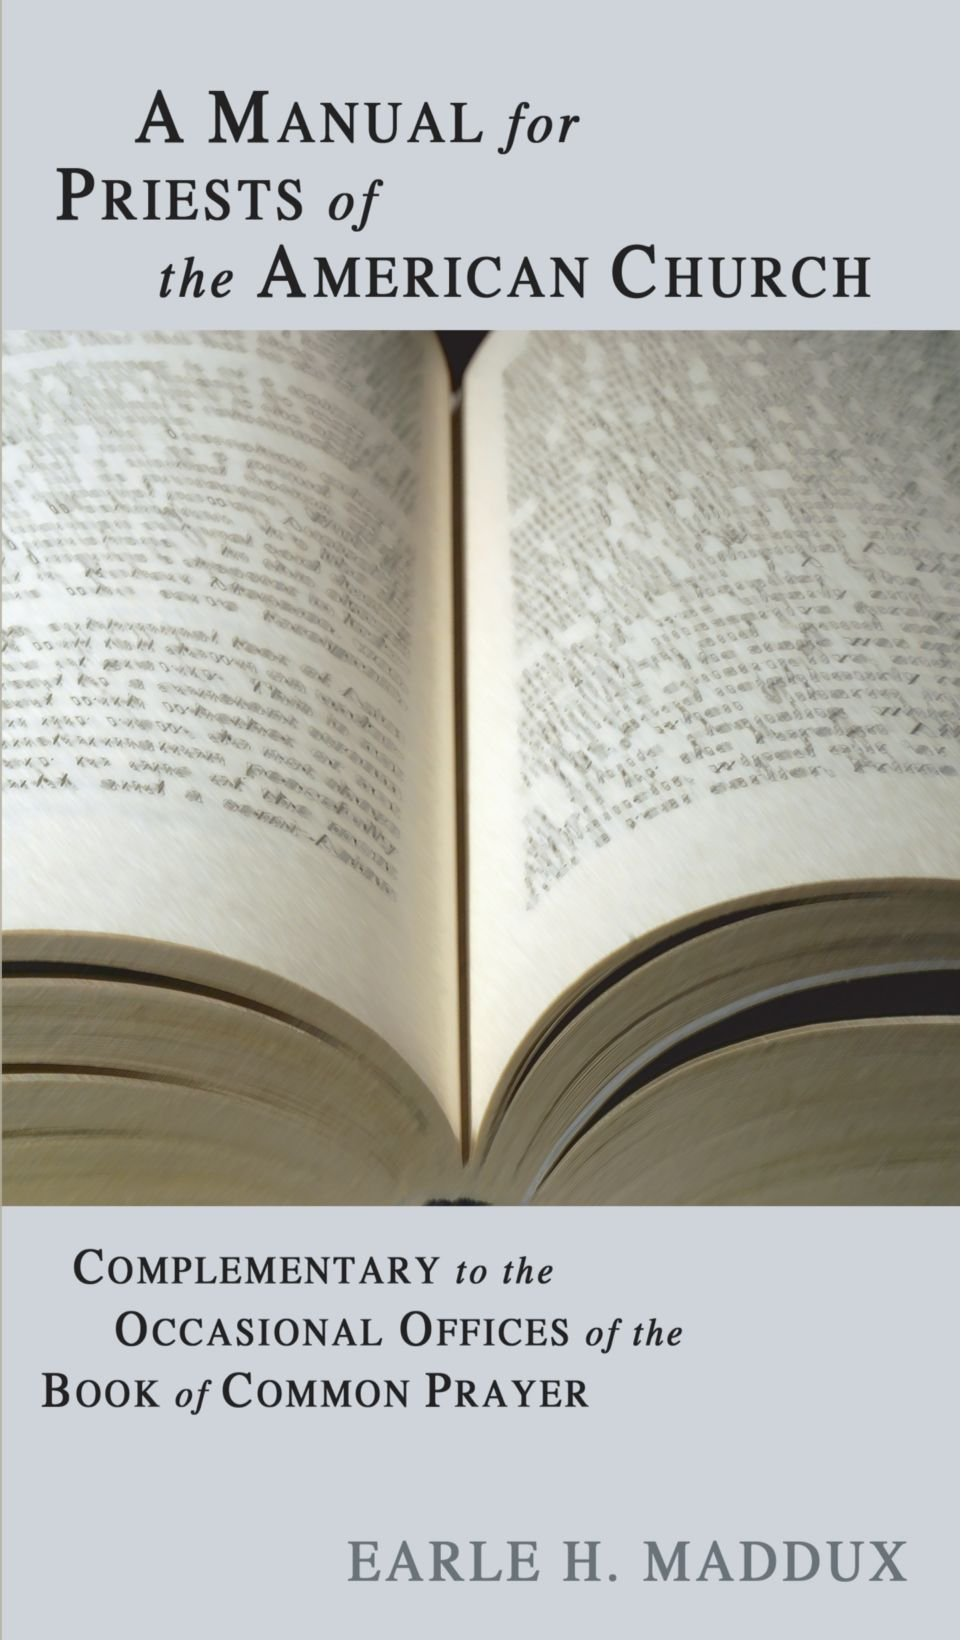 A Manual for Priests of the American Church: Complimentary to the  Occasional Offices of the Book of Common Prayer Paperback – July 27, 2004